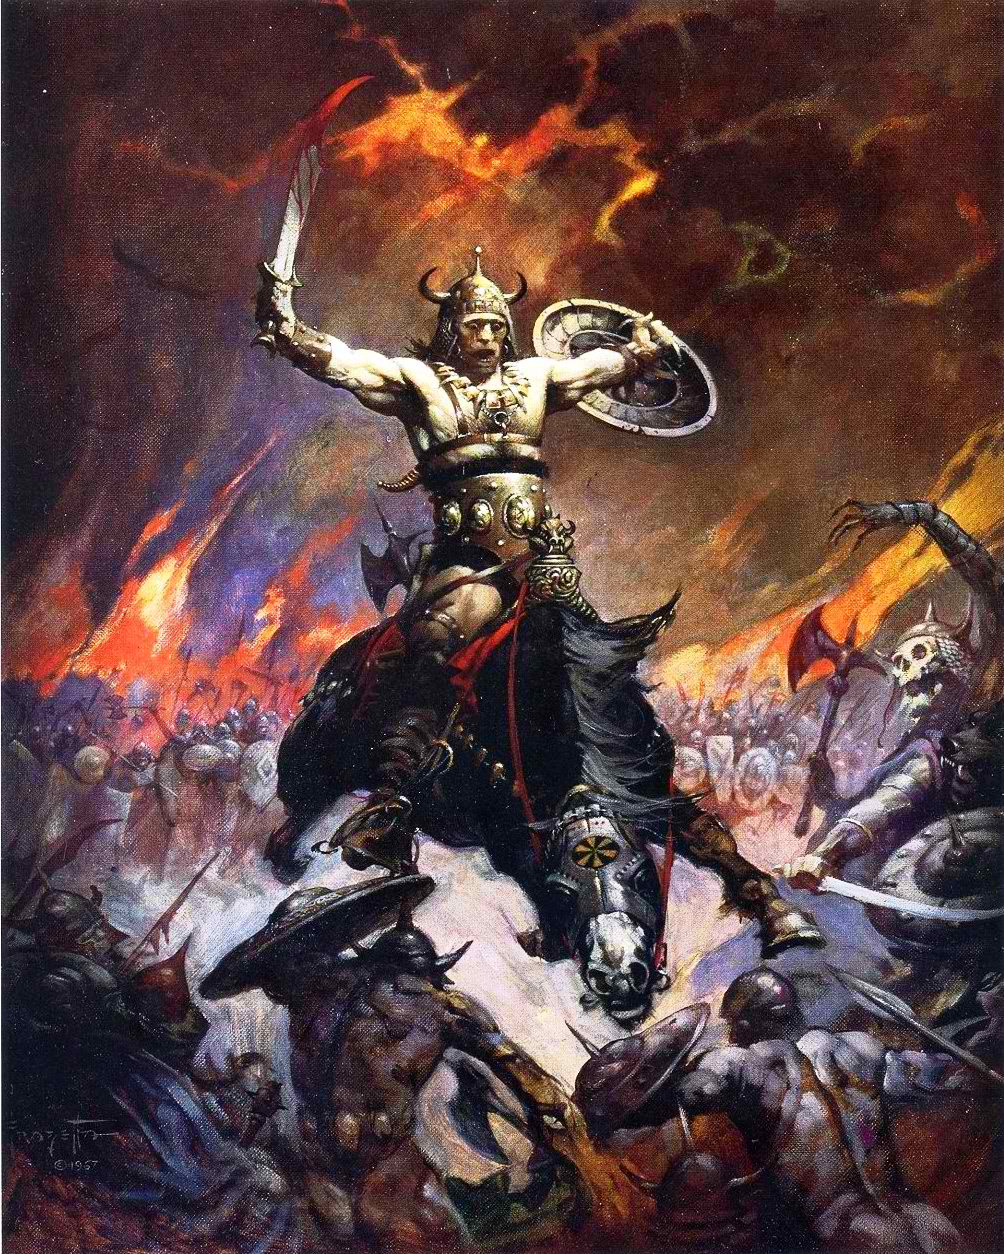 cover_art_by_frank_frazetta_used_for_the_lancer_books_conan_sphere_prestige_and_1981-1994_ace_editions_of_conan_the_conqueror